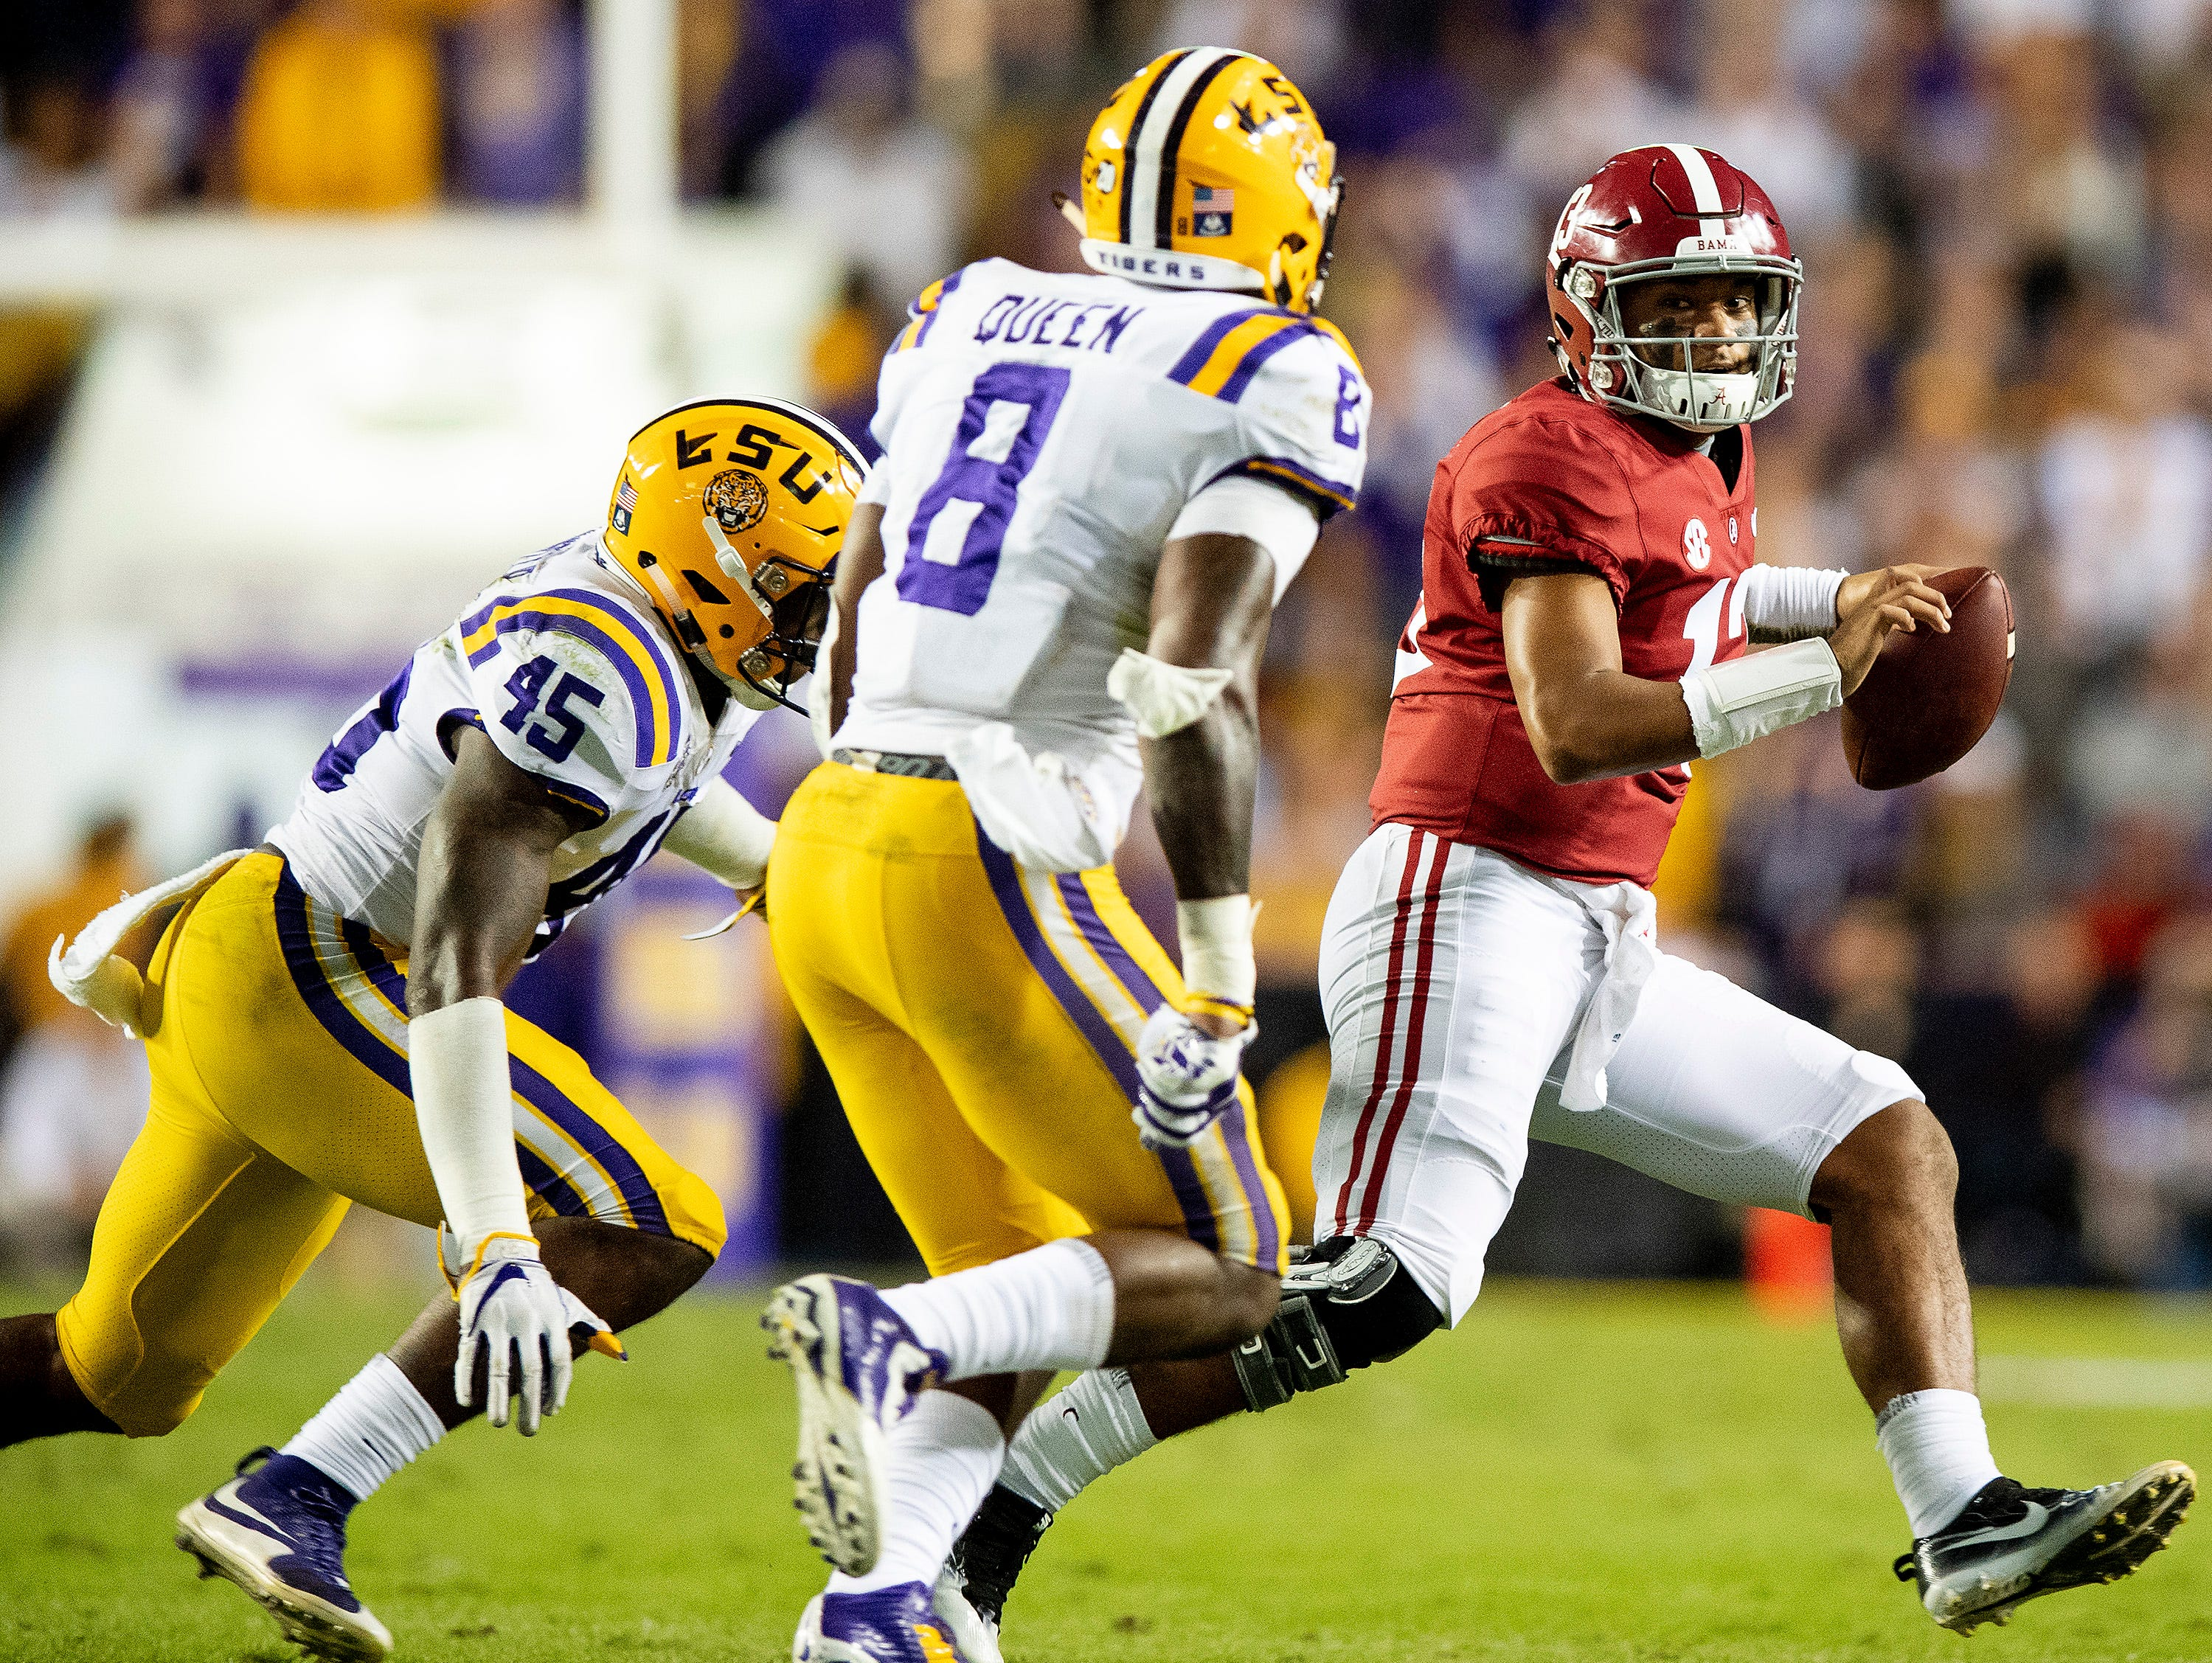 Alabama quarterback Tua Tagovailoa (13) scrambles against Louisiana State University in first half action at Tiger Stadium in Baton Rouge, La., on Saturday November 3, 2018.